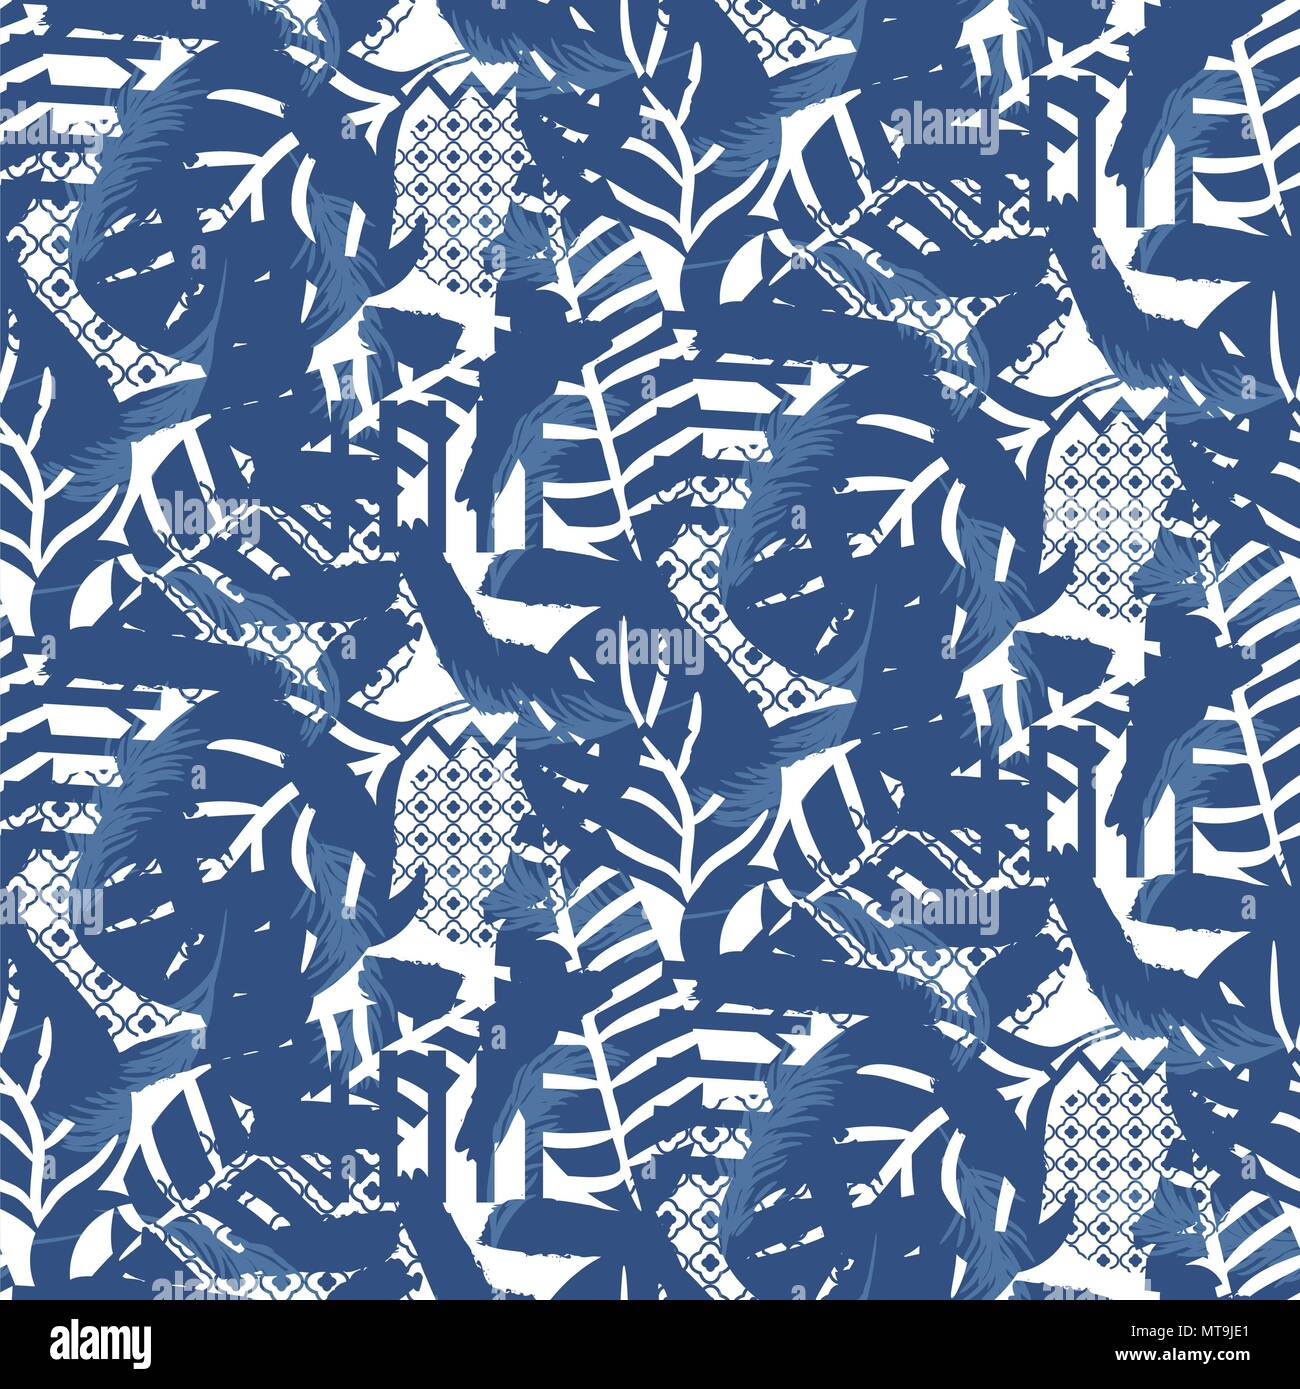 Floral motif background texture. Blue seamless pattern. - Stock Image